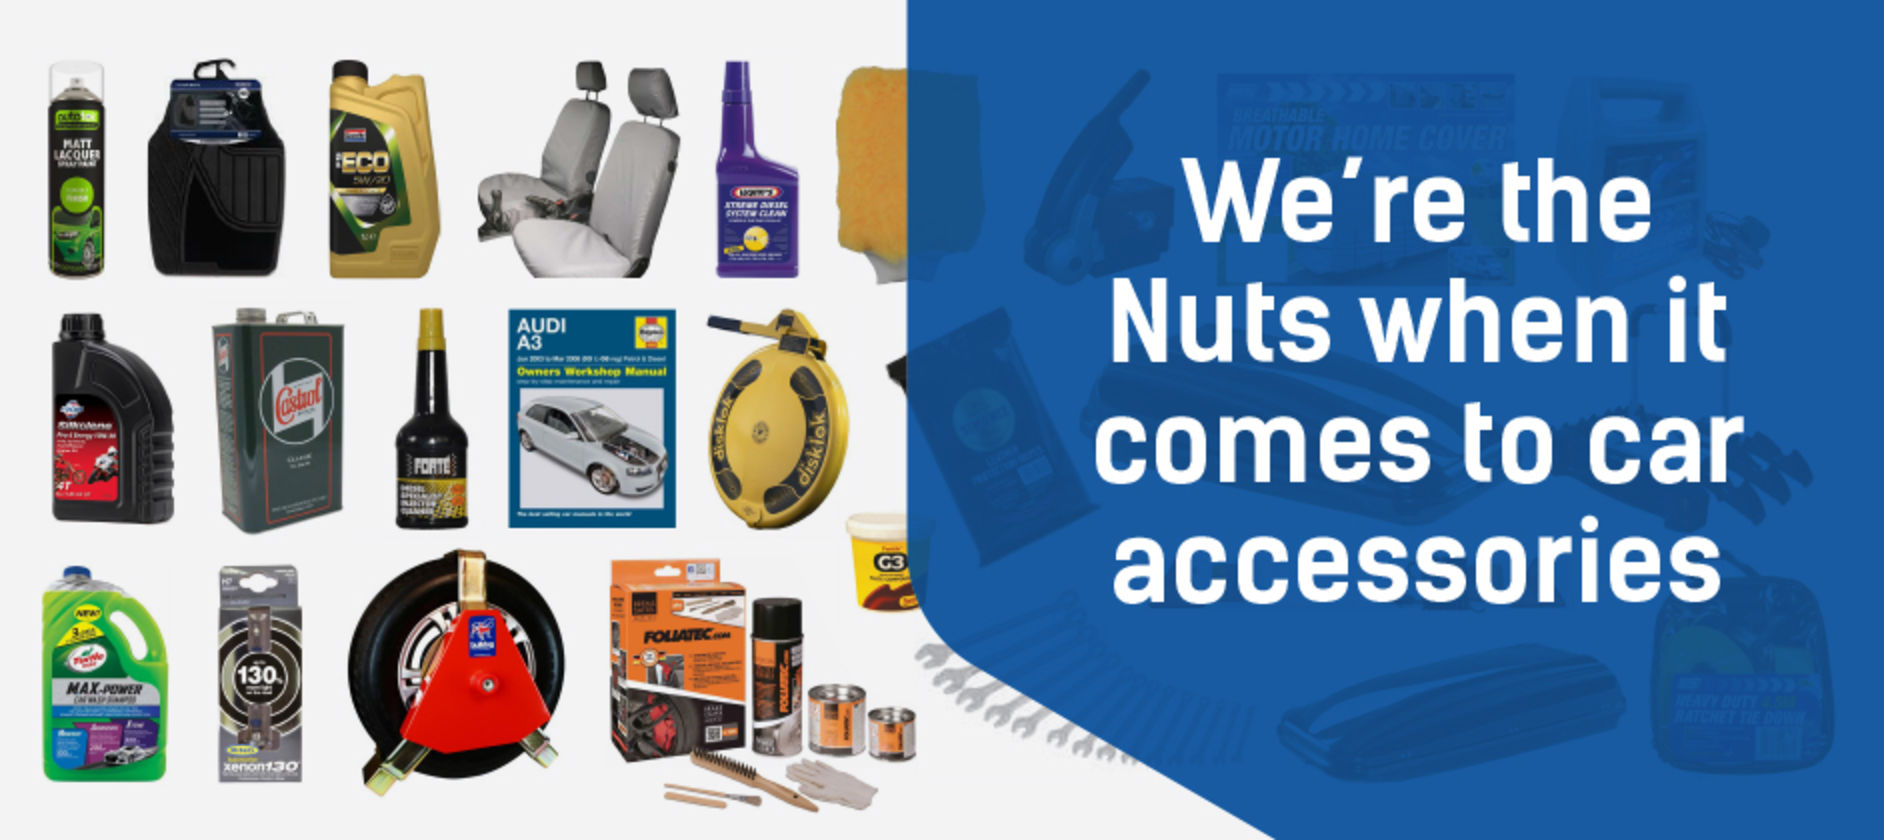 We're the Nuts...accessories